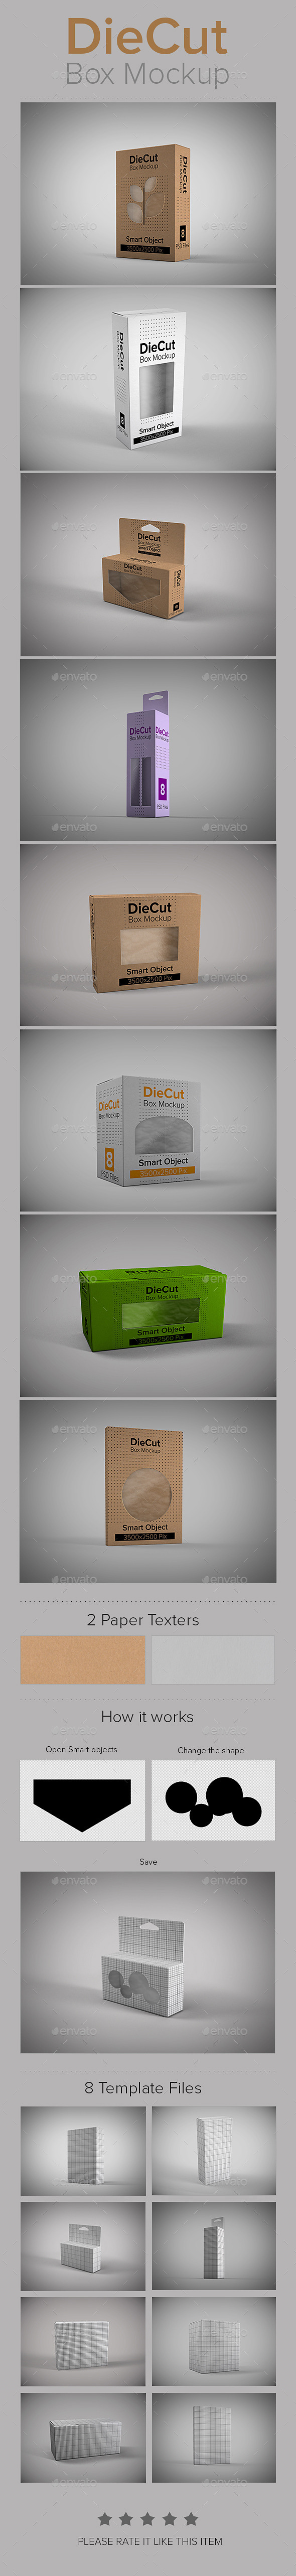 GraphicRiver DieCut Box Mockup 9083428